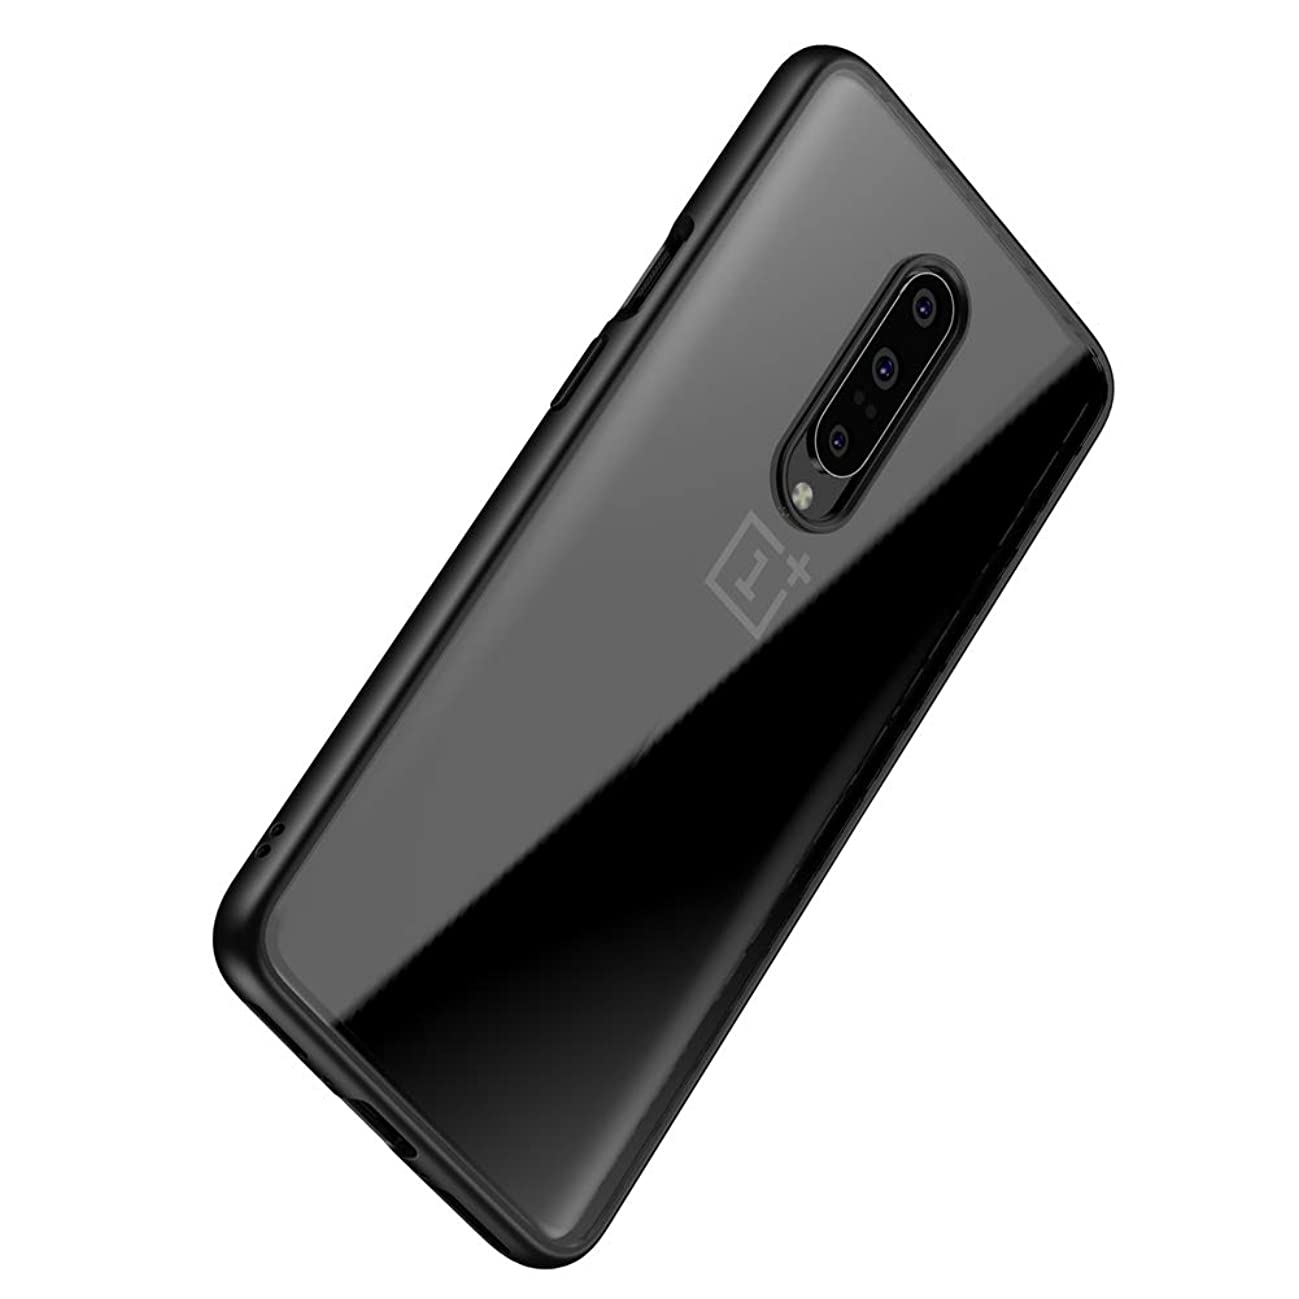 Vinve for Oneplus 7 Pro Case, Slim Clear Anti-Scratch Ultra Hybrid Designed Shockproof Anti-Drop Cover Clear Hard Back Panel + TPU Bumper Protective Case (Black)